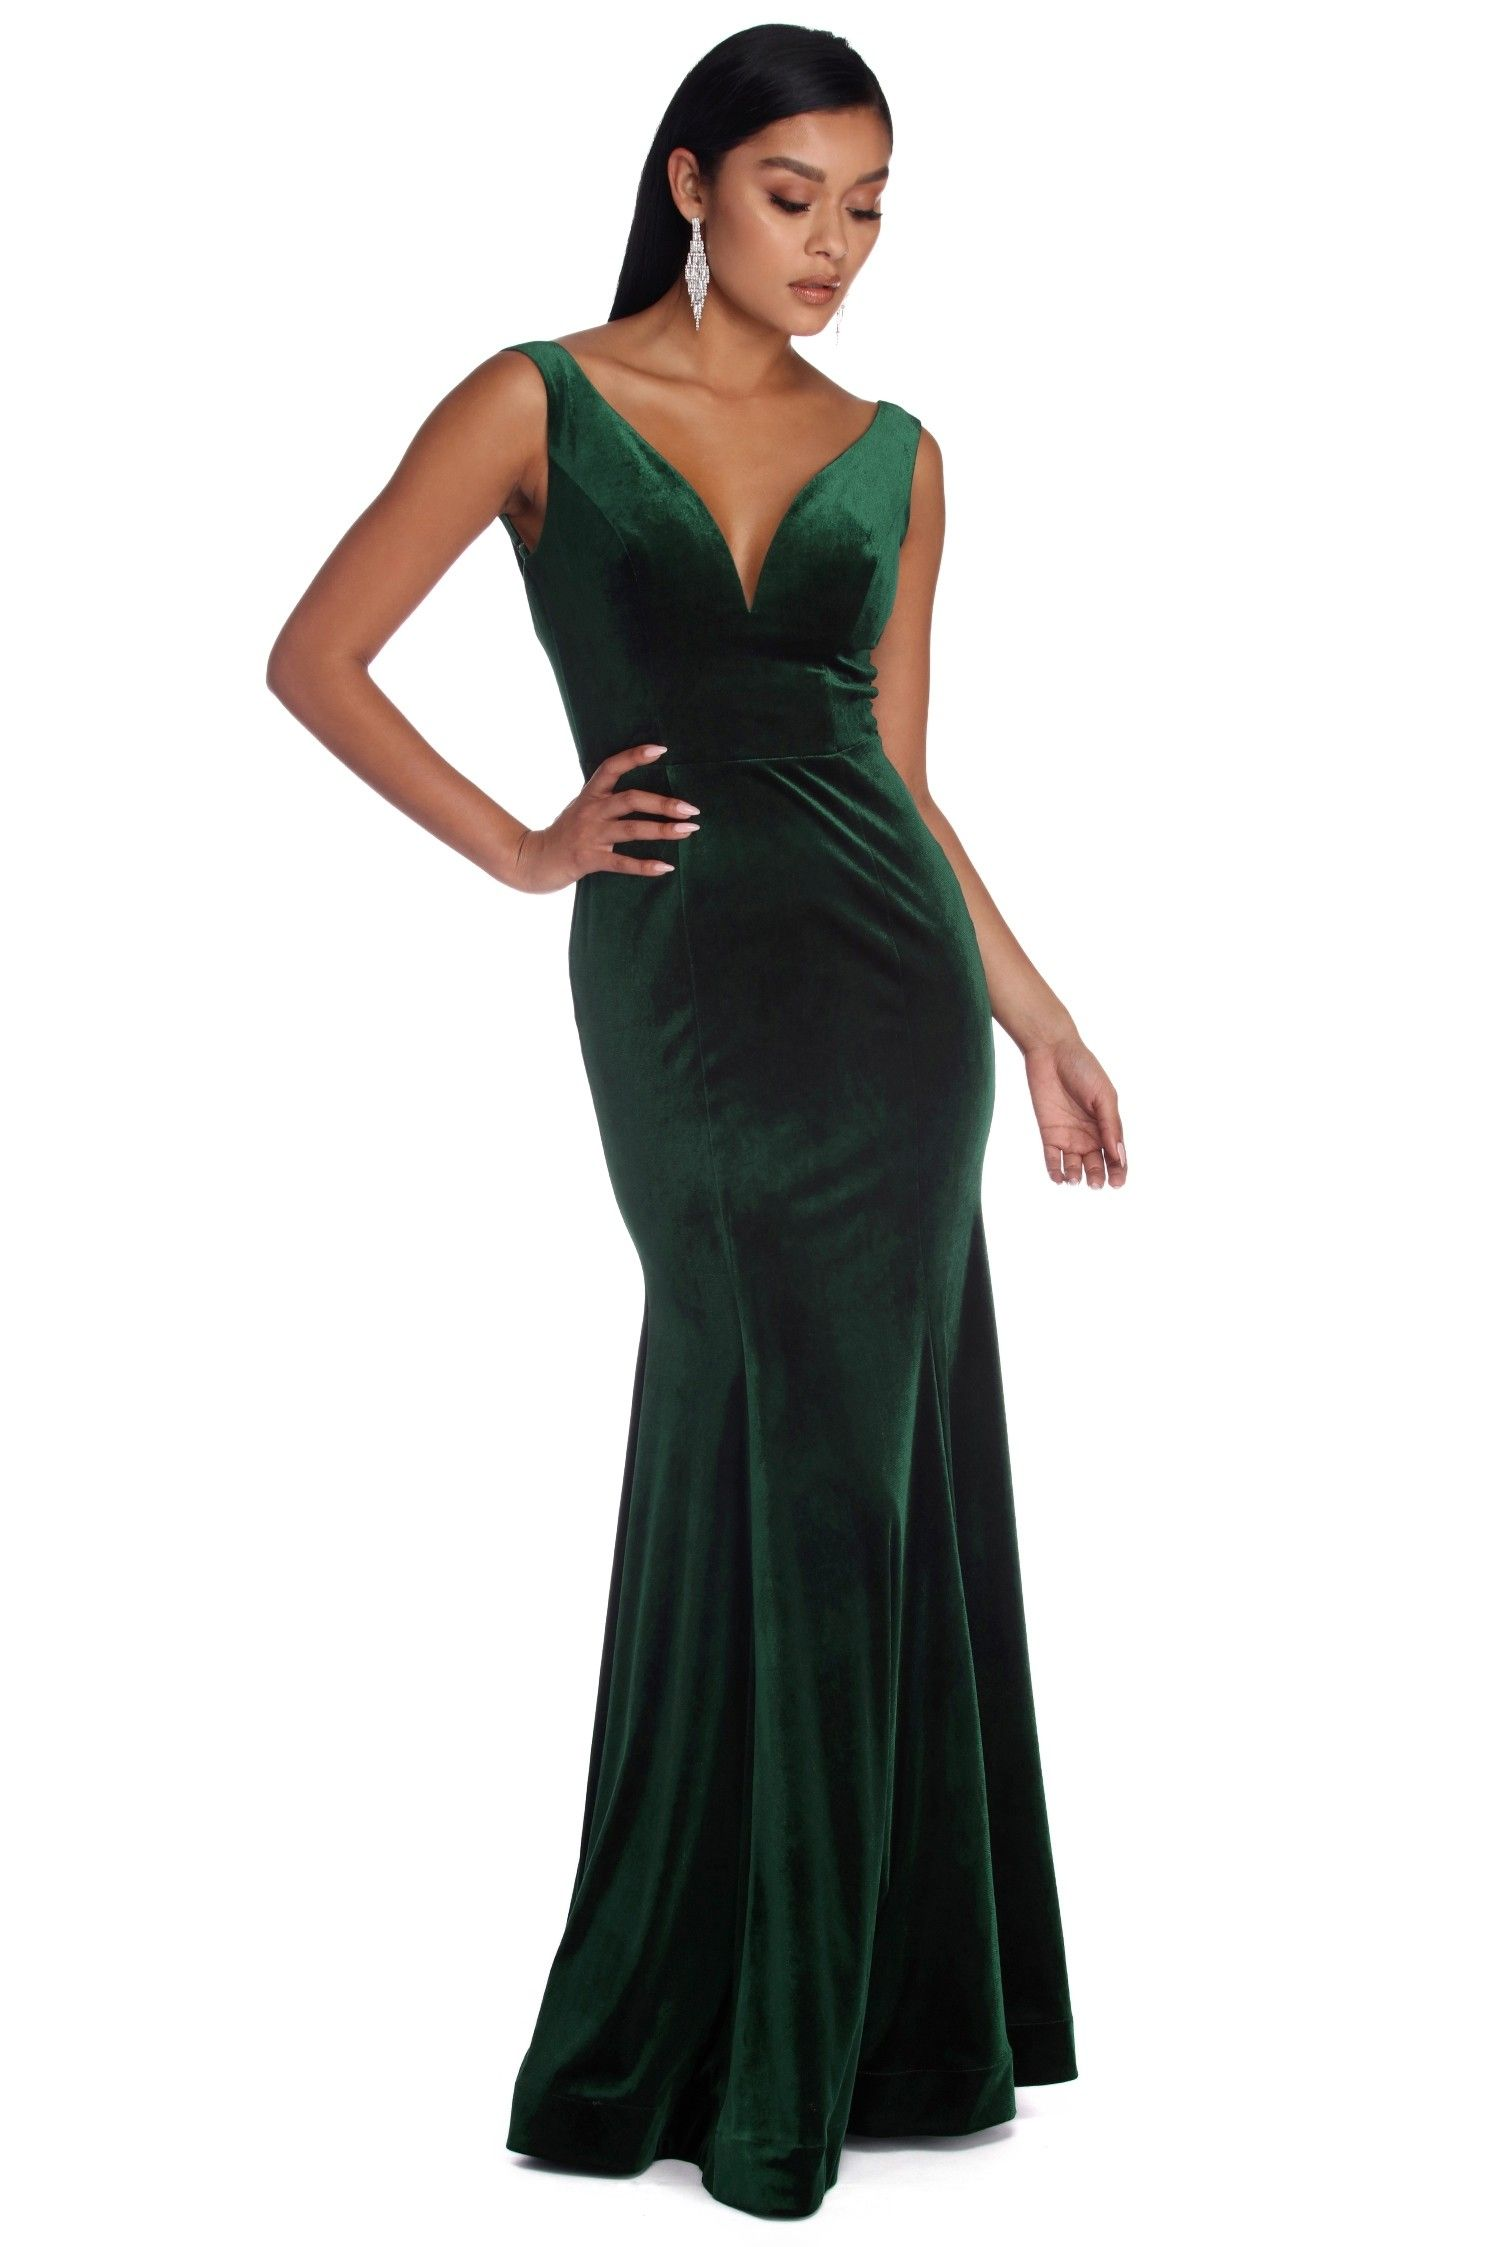 CLEARANCE Delilah Plunging Formal Velvet Dress Wedding